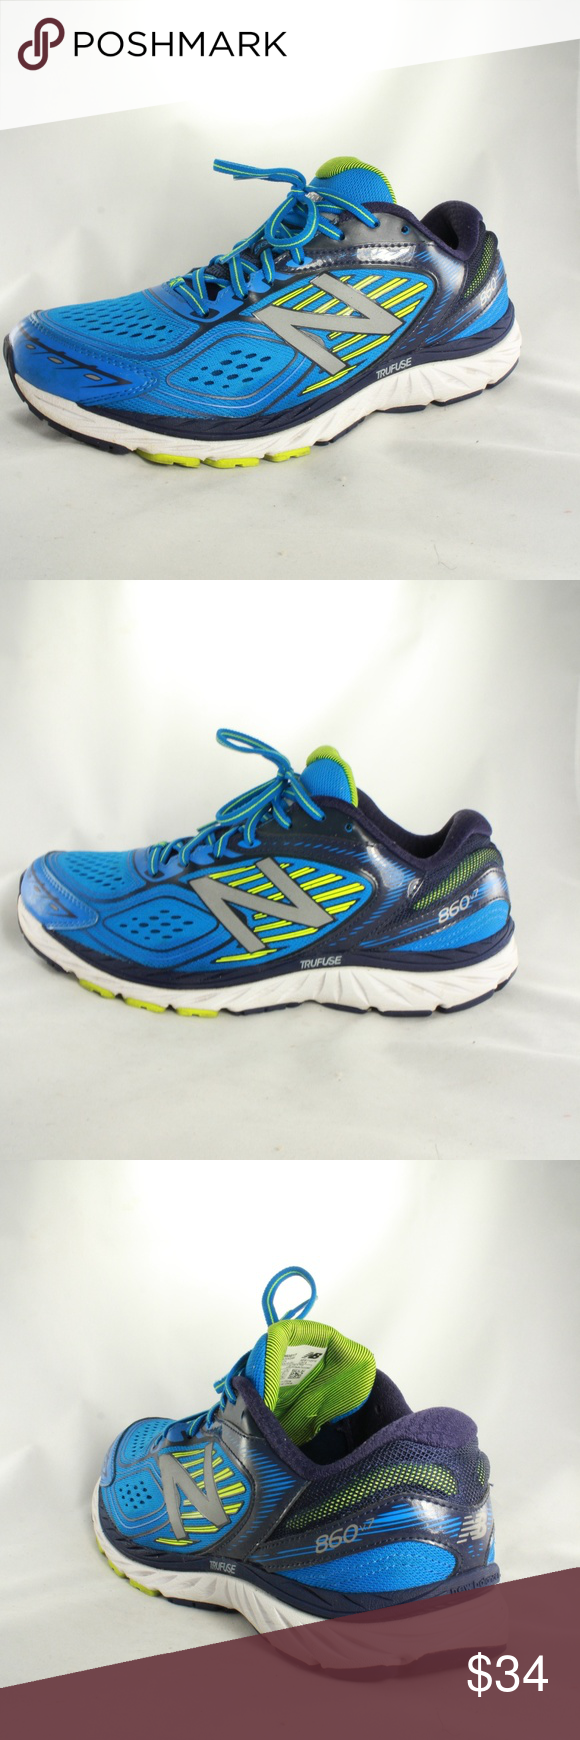 New Balance 860v7 Mens Stability Running Shoes Great stability focused high  quality running shoes. Lots 2670311d012